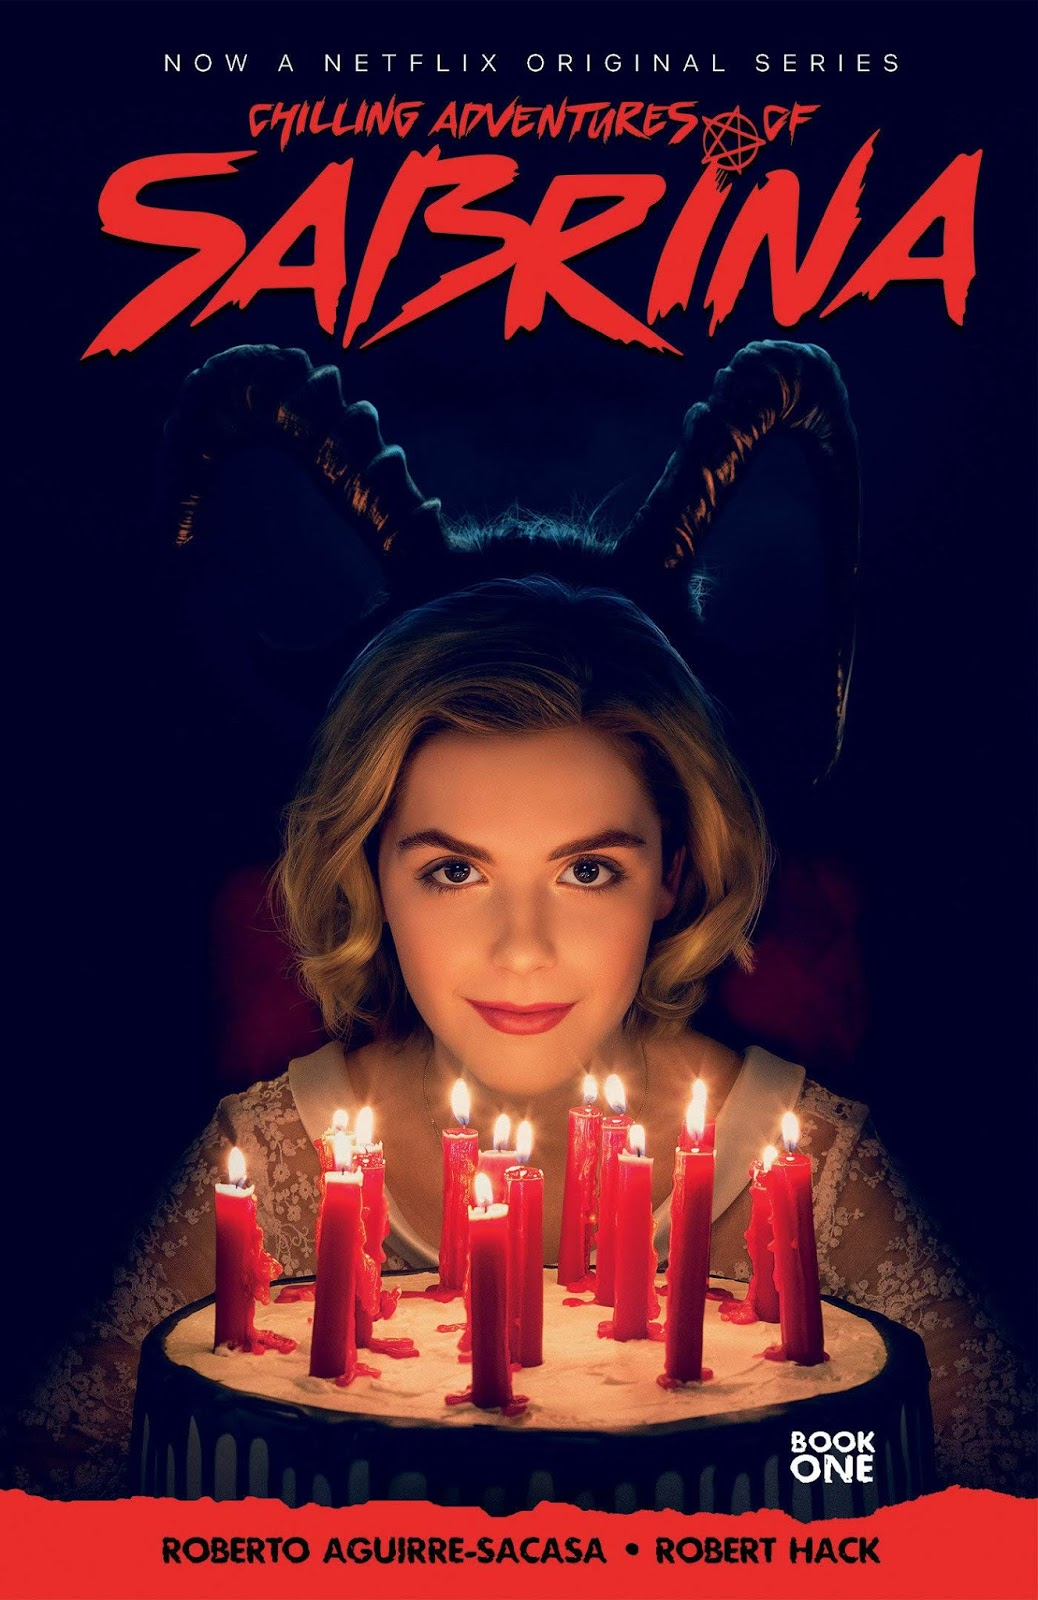 Chilling Adventures of Sabrina S01 Complete Eng Hindi 480p WEB-DL